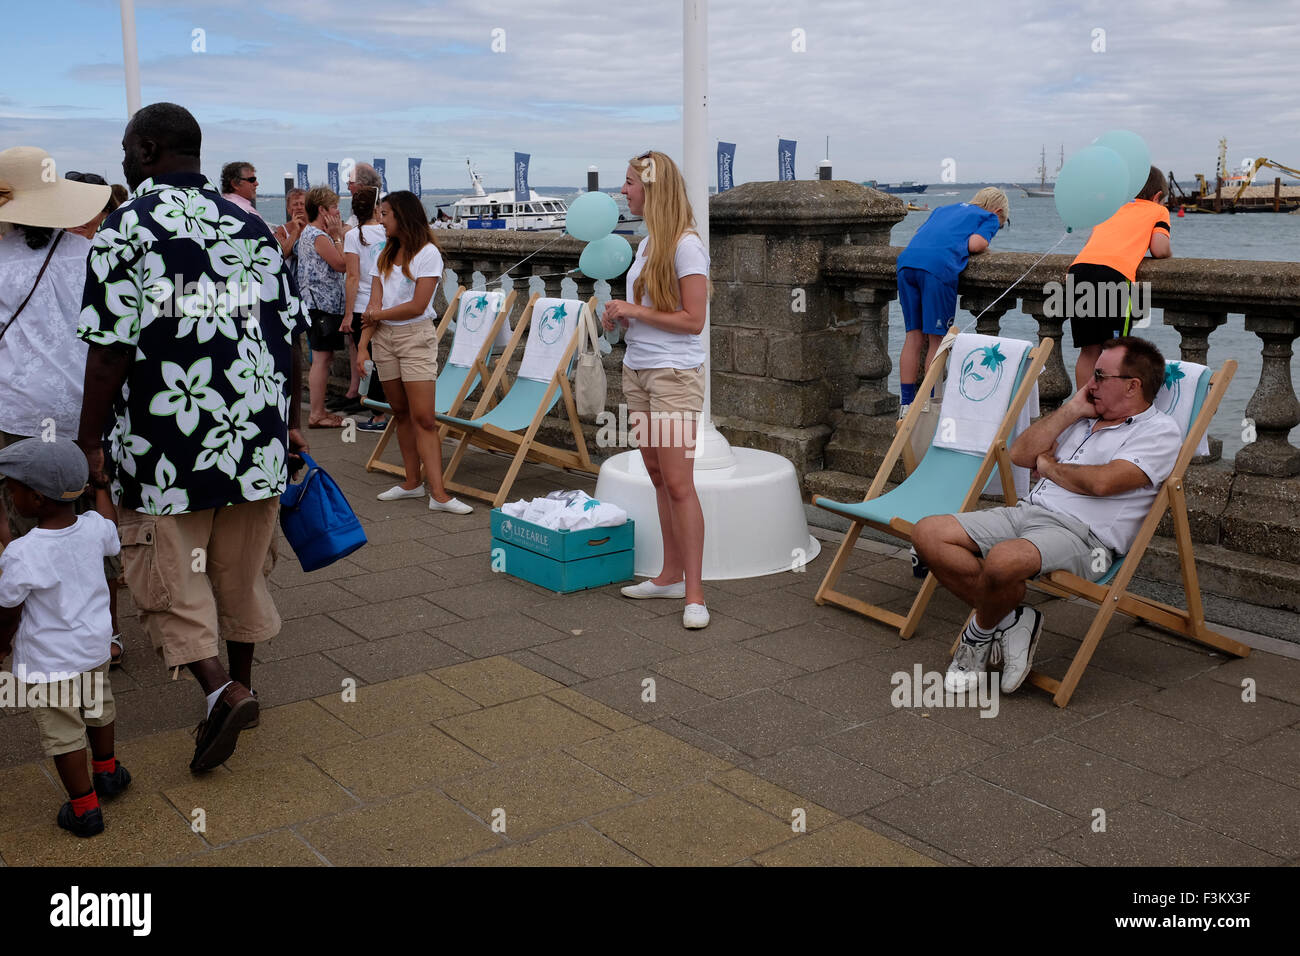 Cowes Week, 2015, Isle of Wight sales staff Liz Earle cosmetics The Parade Yacht Racing, Shore side entertainments, - Stock Image